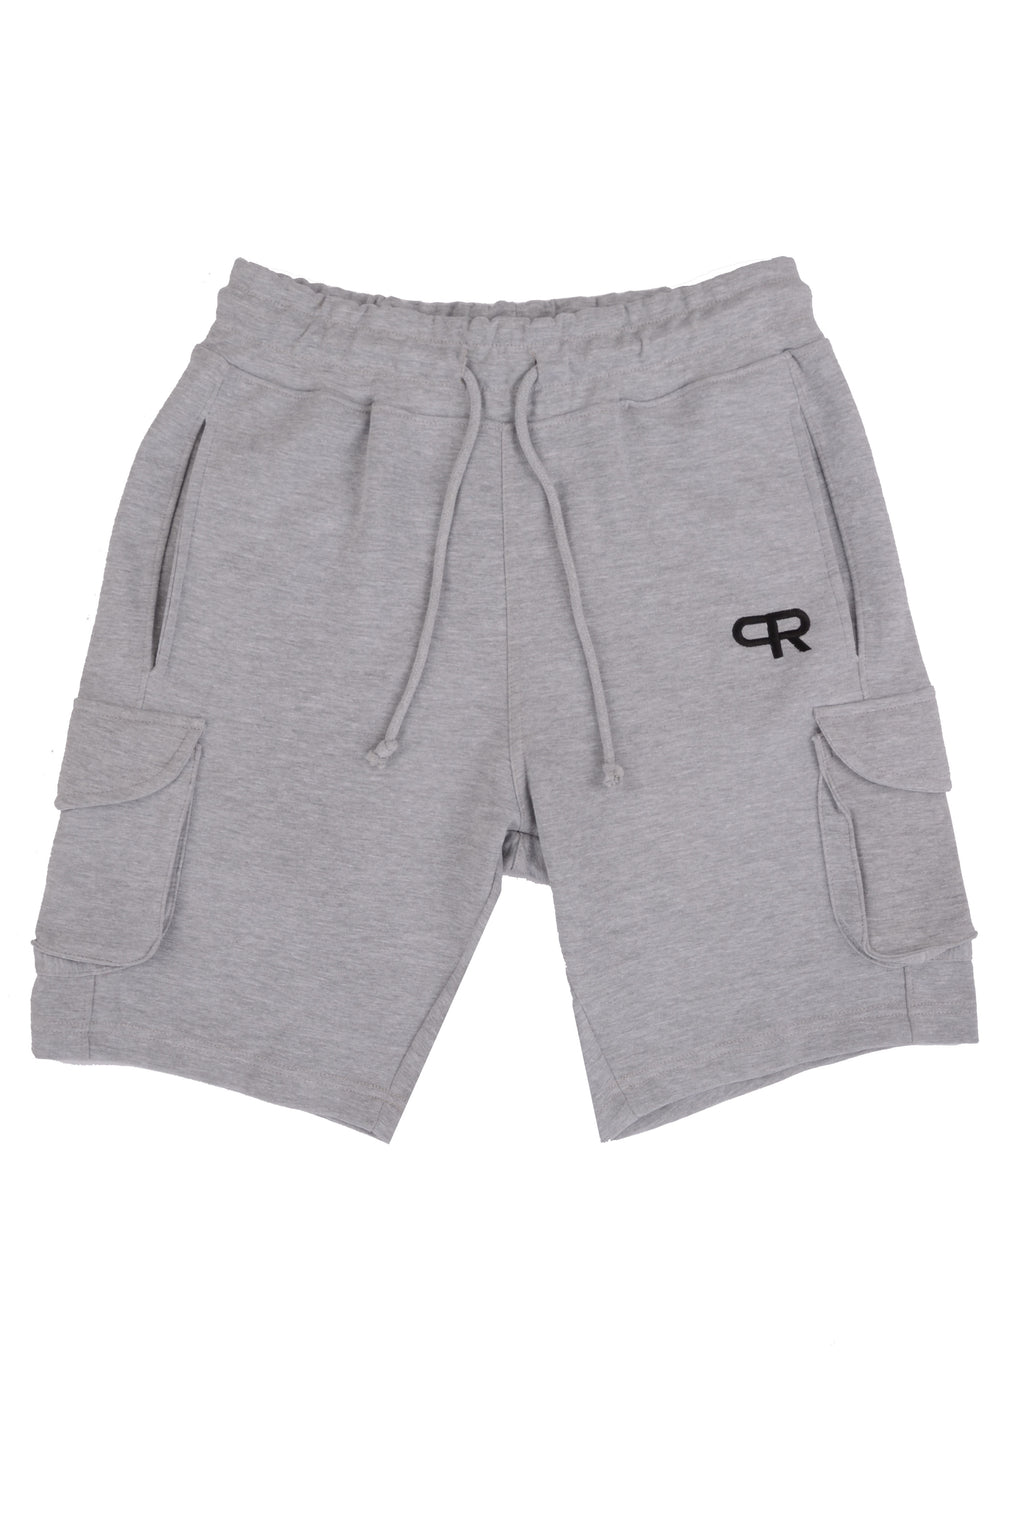 PR Tactical Cargo Shorts - Grey